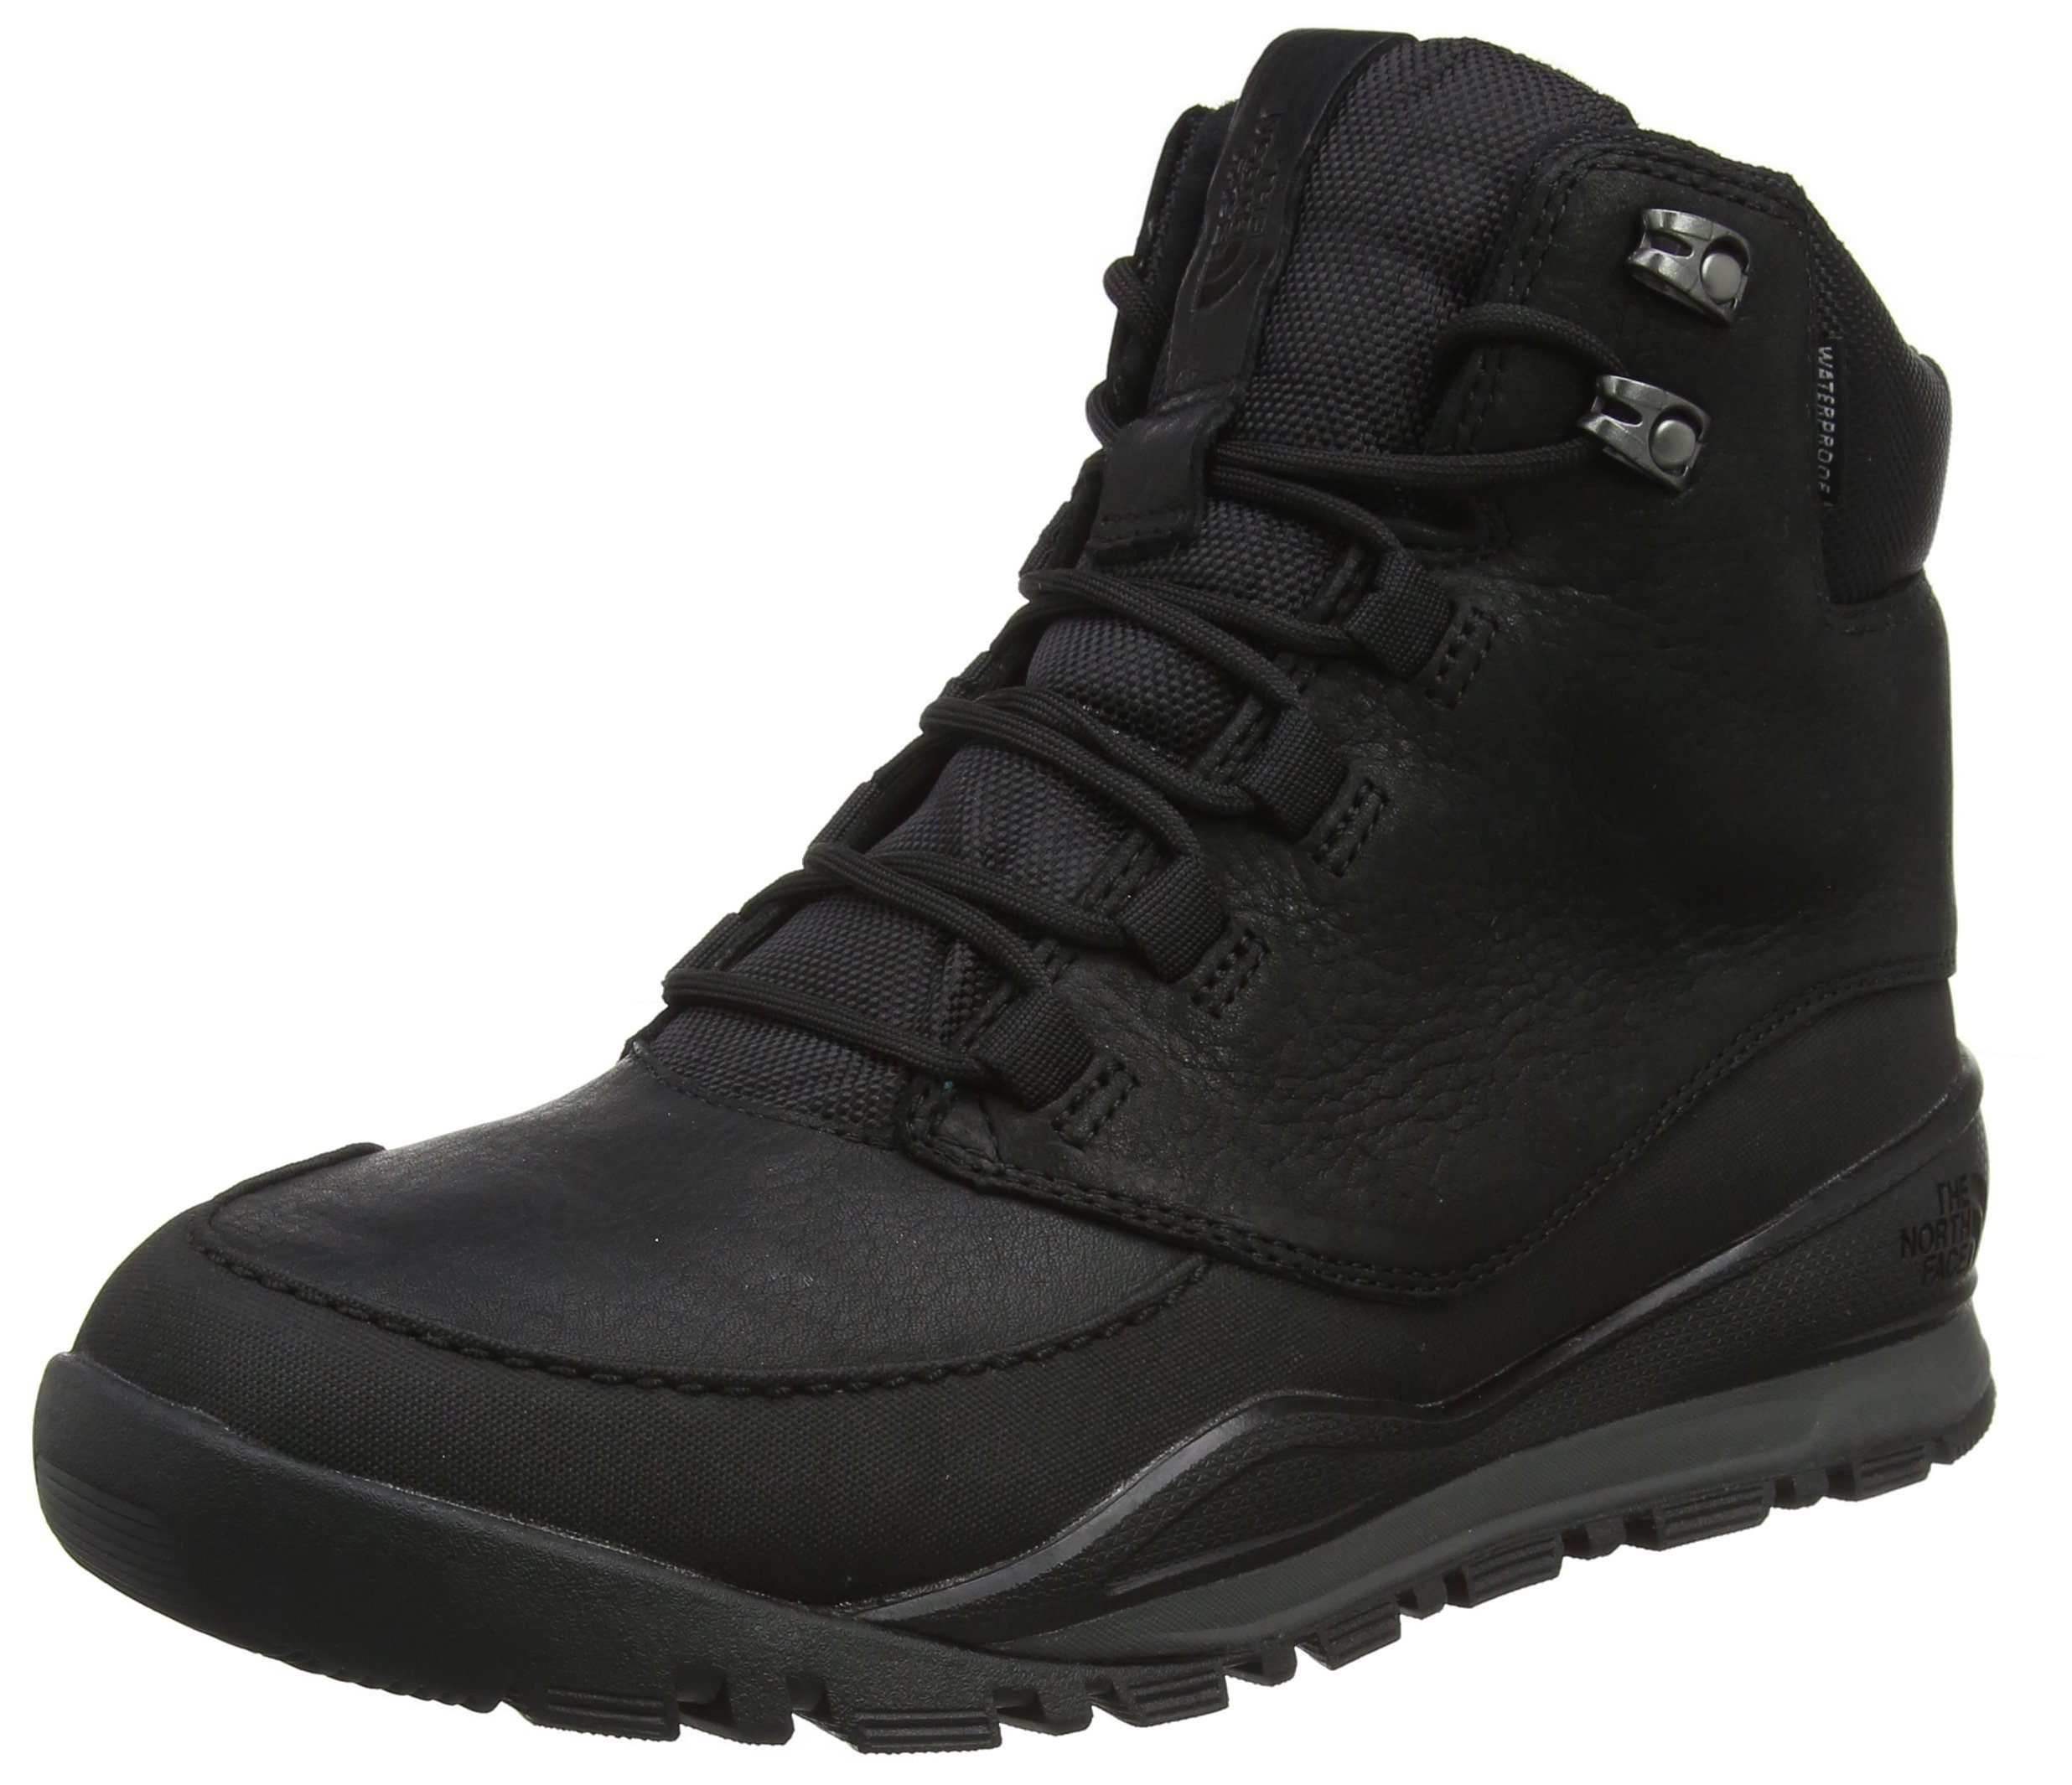 927246812 THE NORTH FACE Men's Edgewood 7-inch Low Rise Hiking Boots